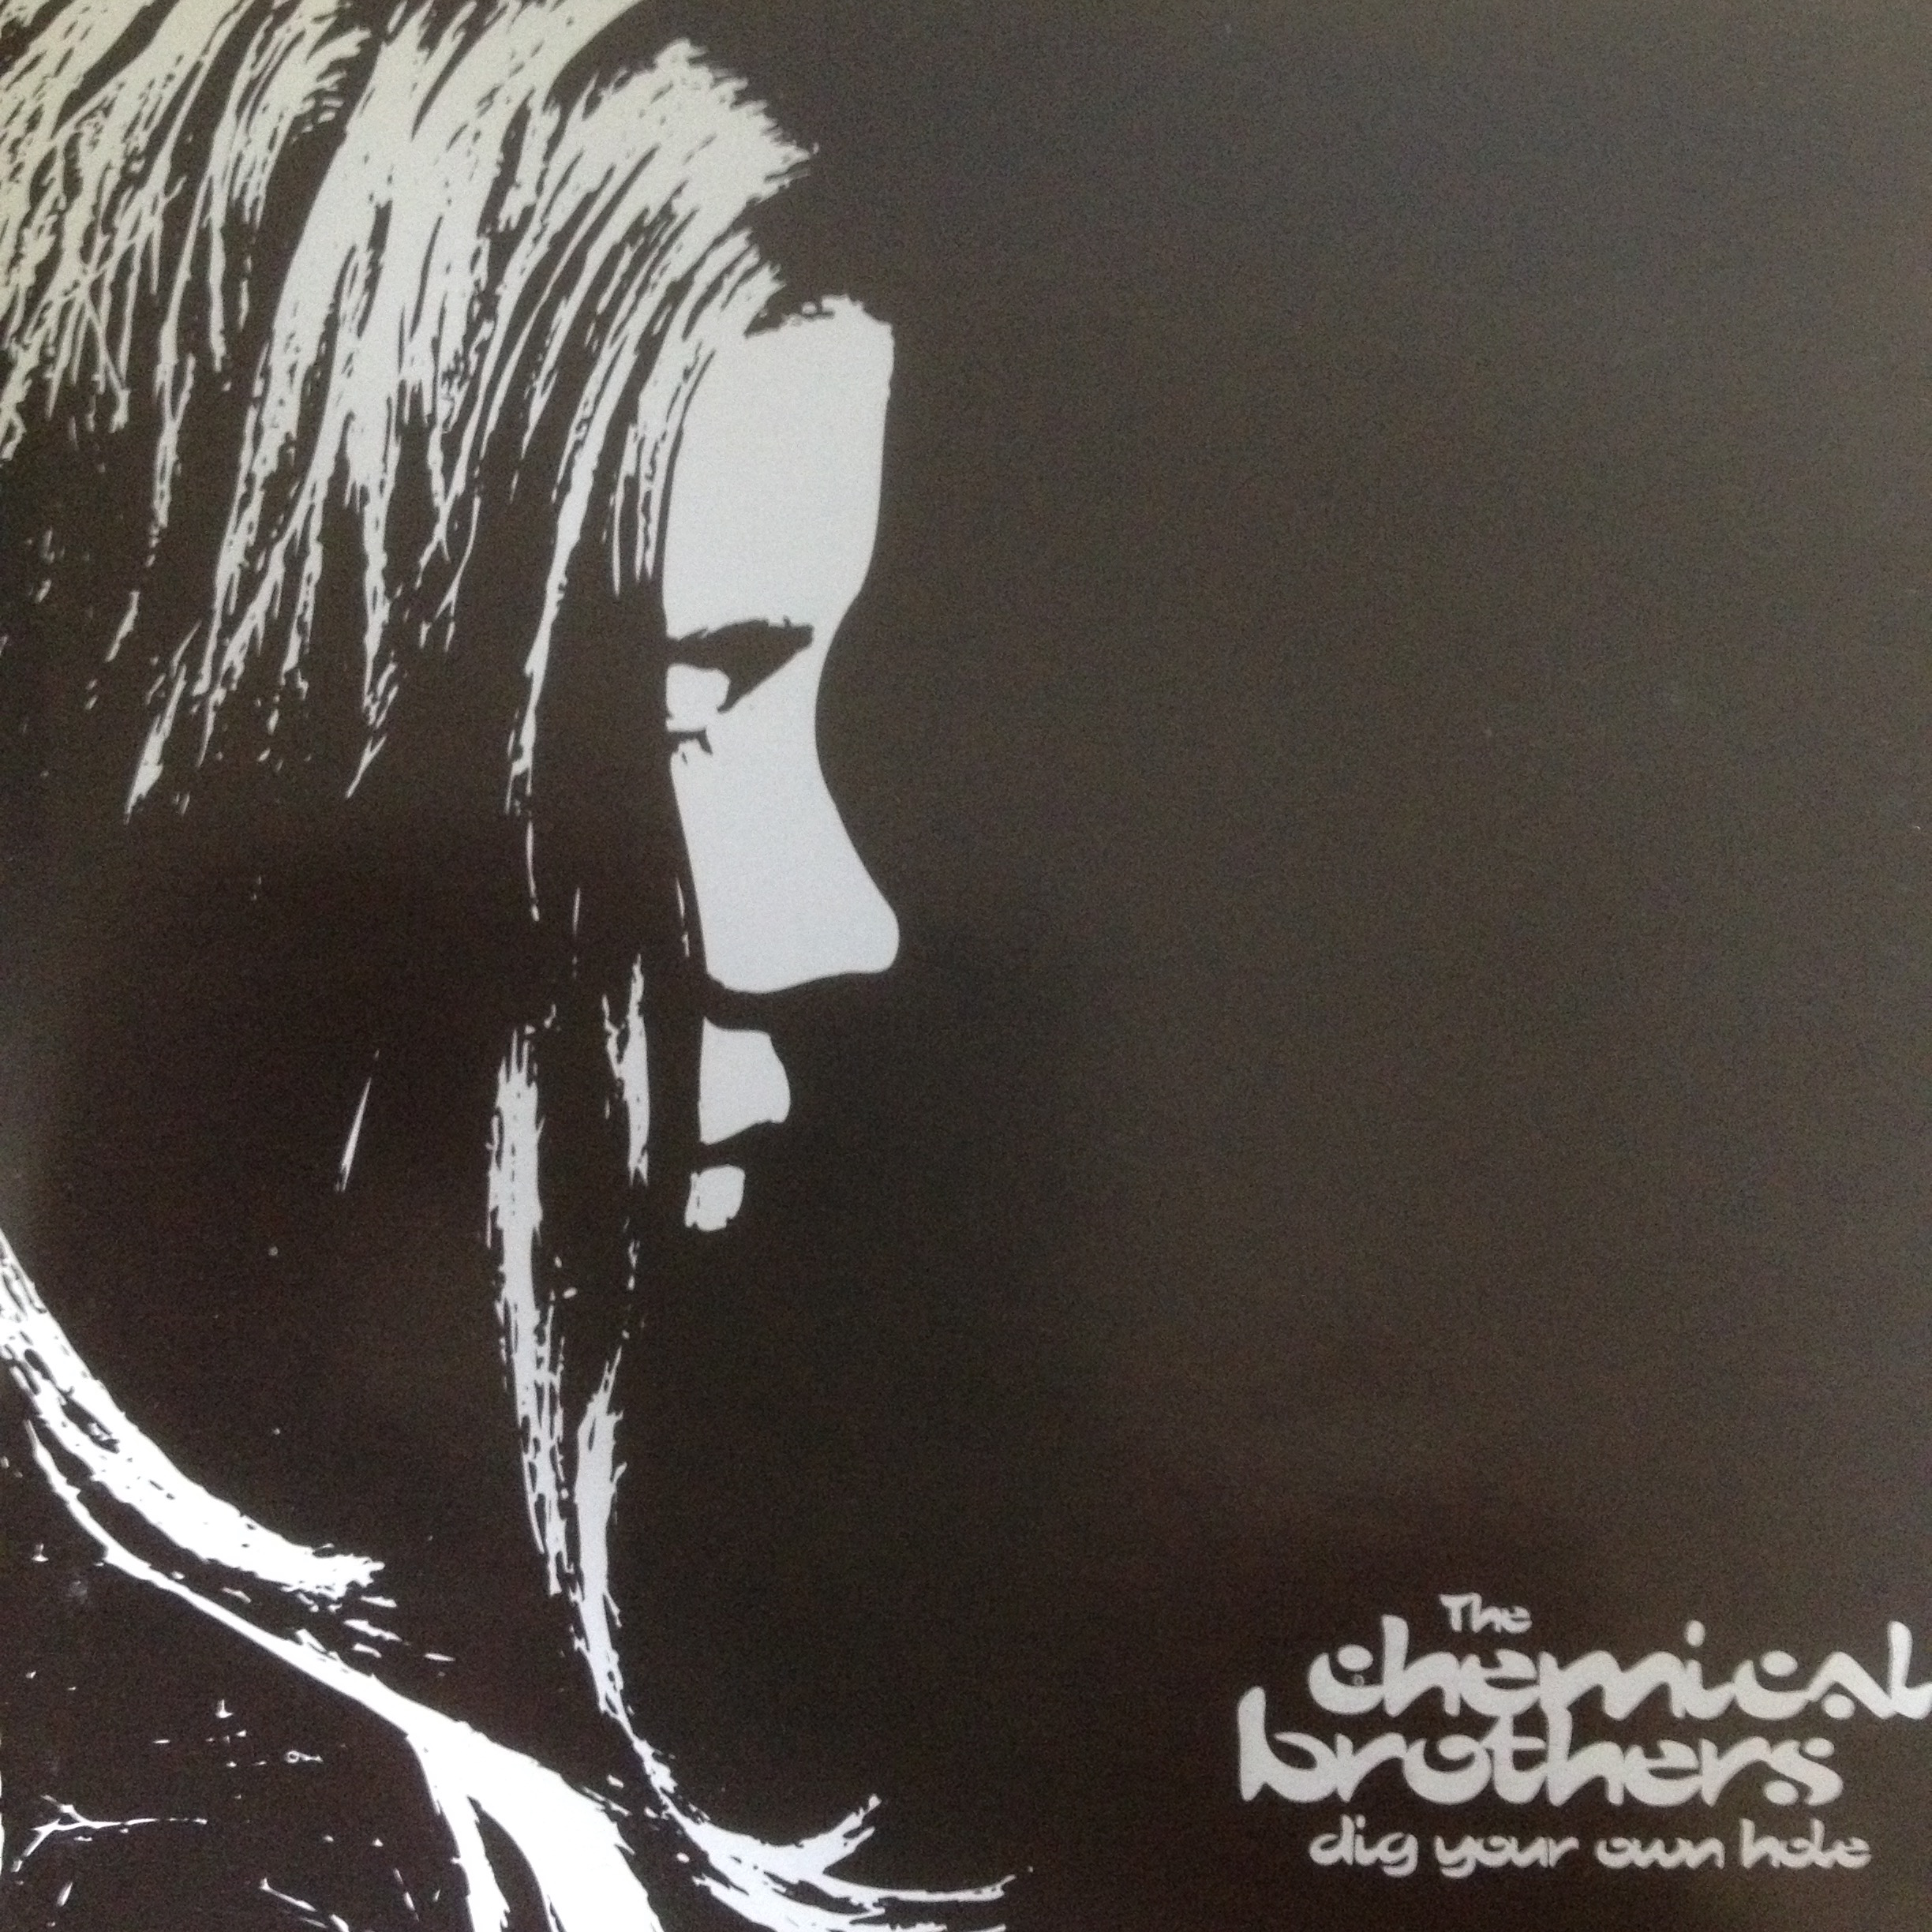 The chemical brothers 「block rockin' beat」「setting